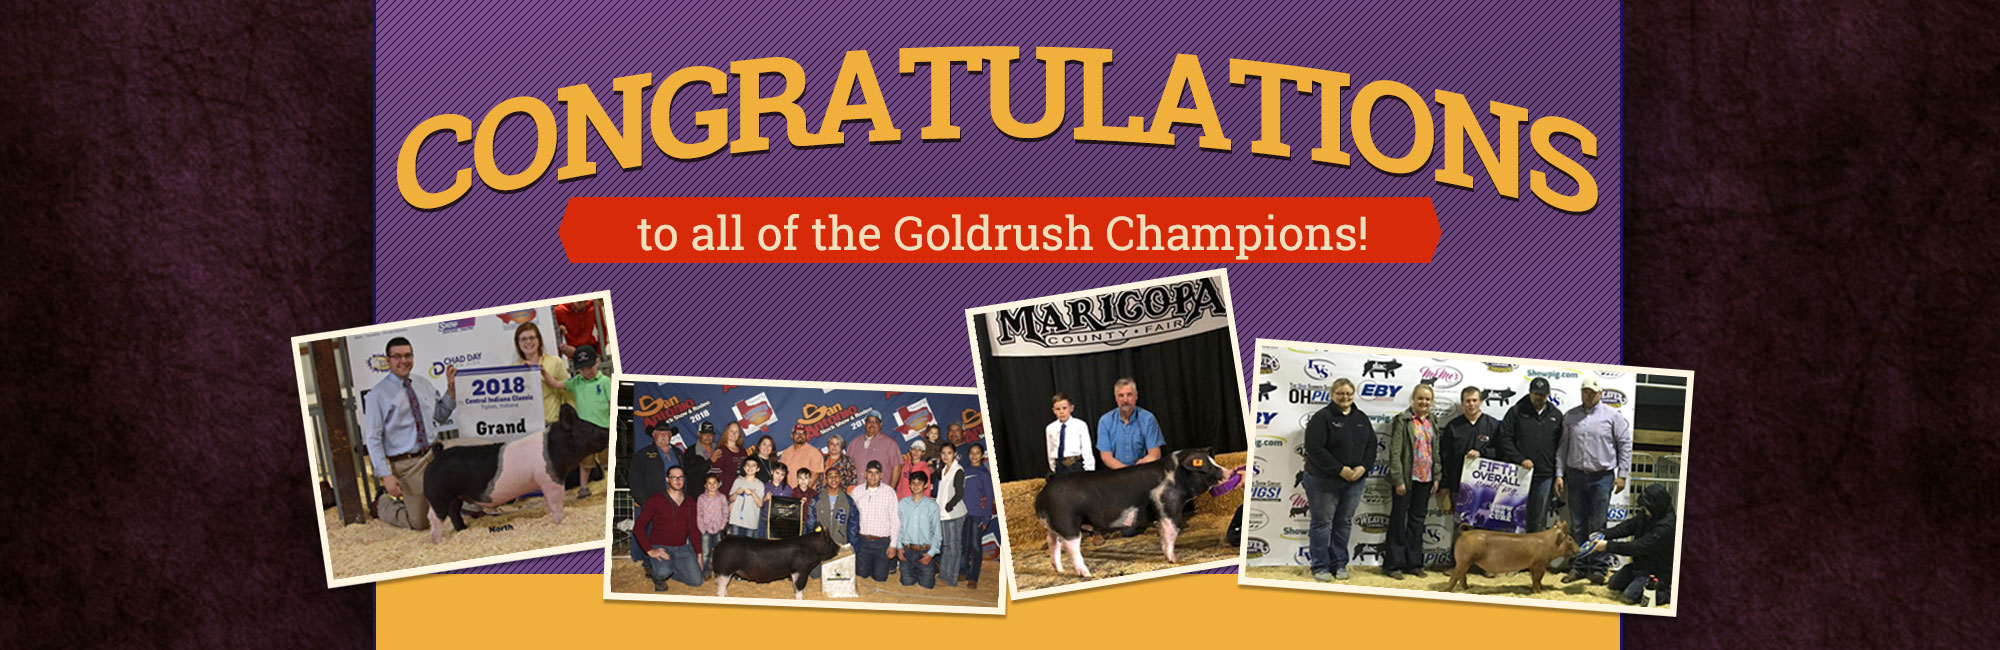 Congratulations to all of the Goldrush Champions!